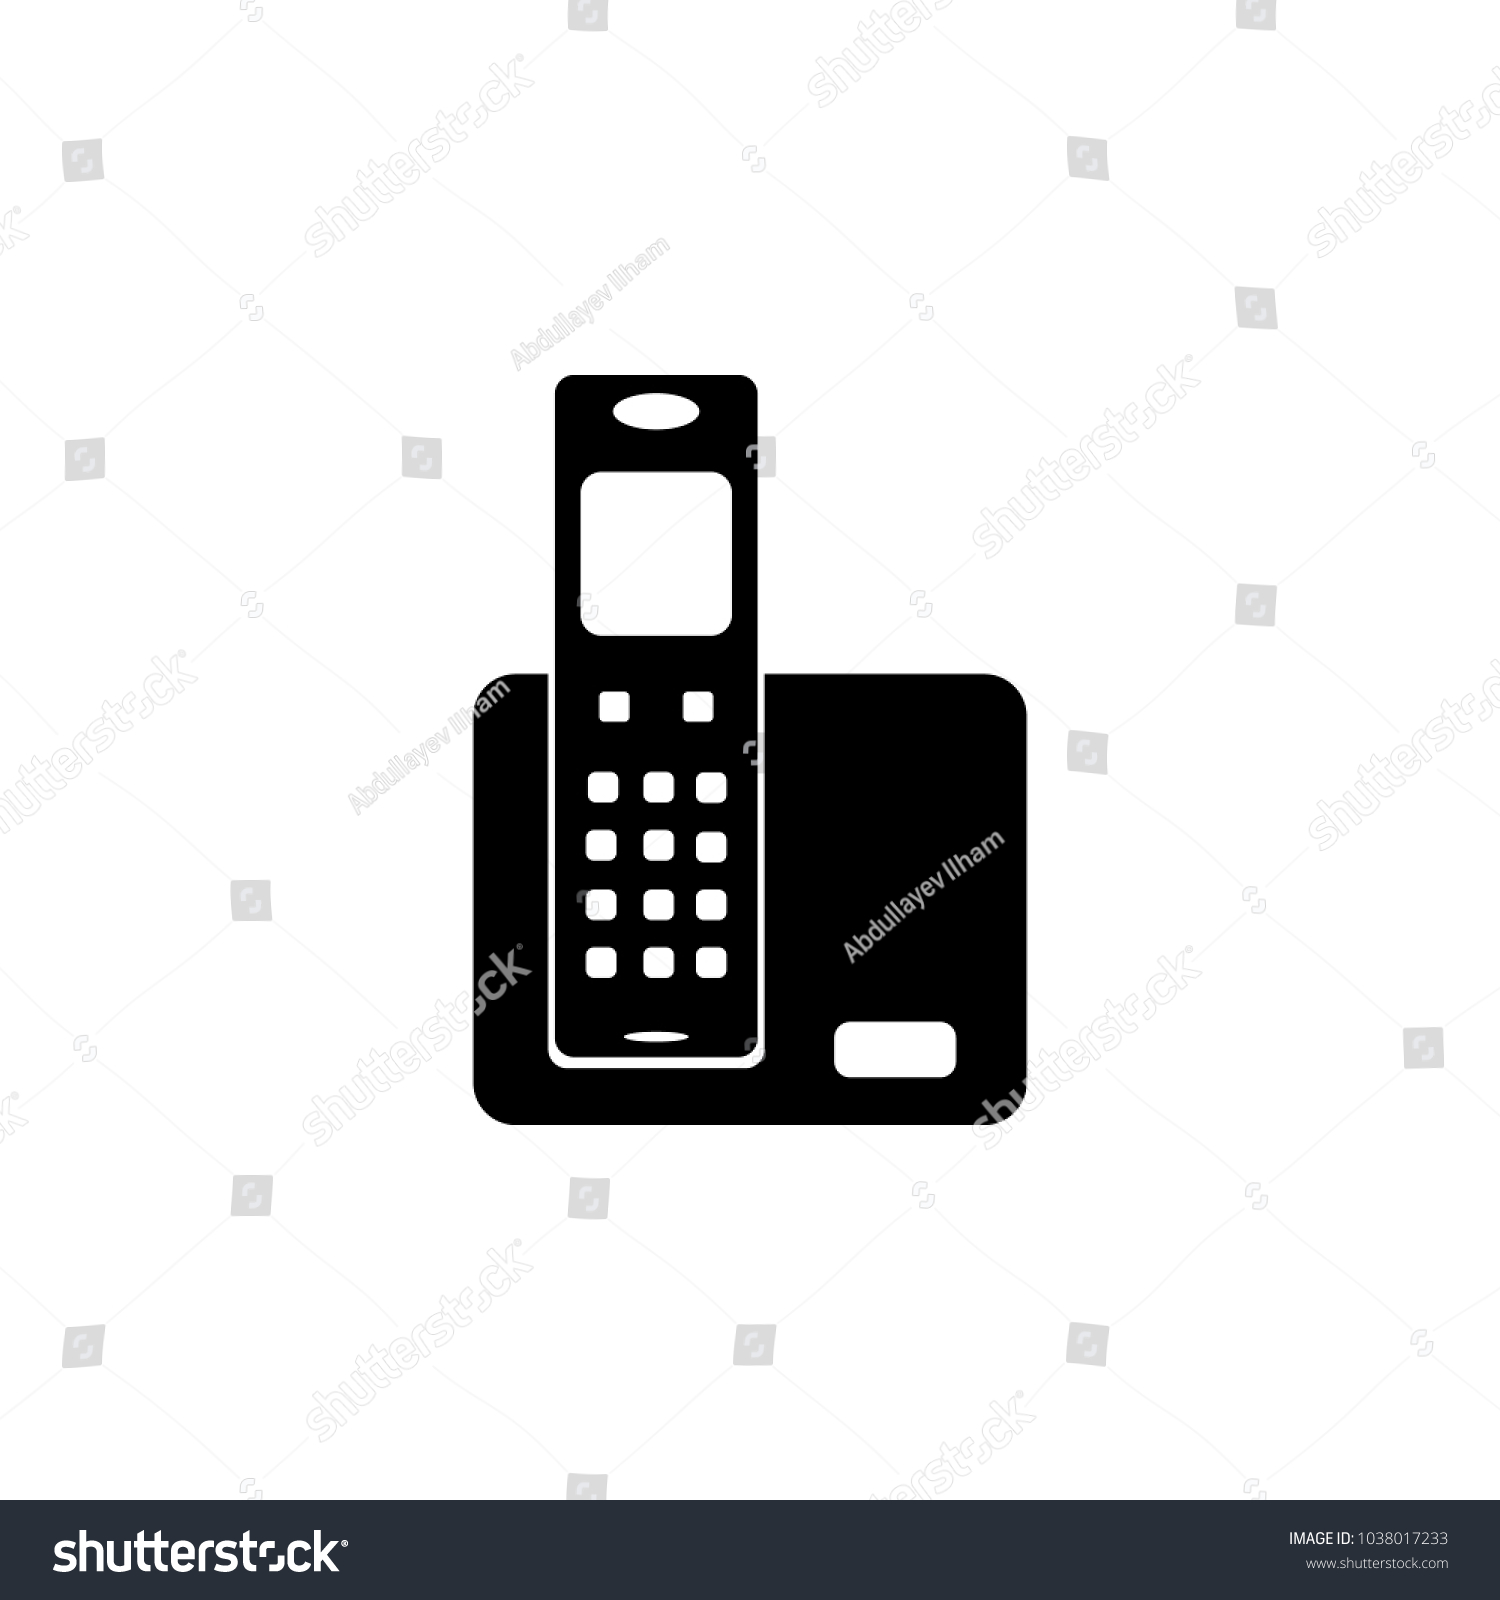 Home Phone Icon Element Popular Home Appliances Stock Illustration